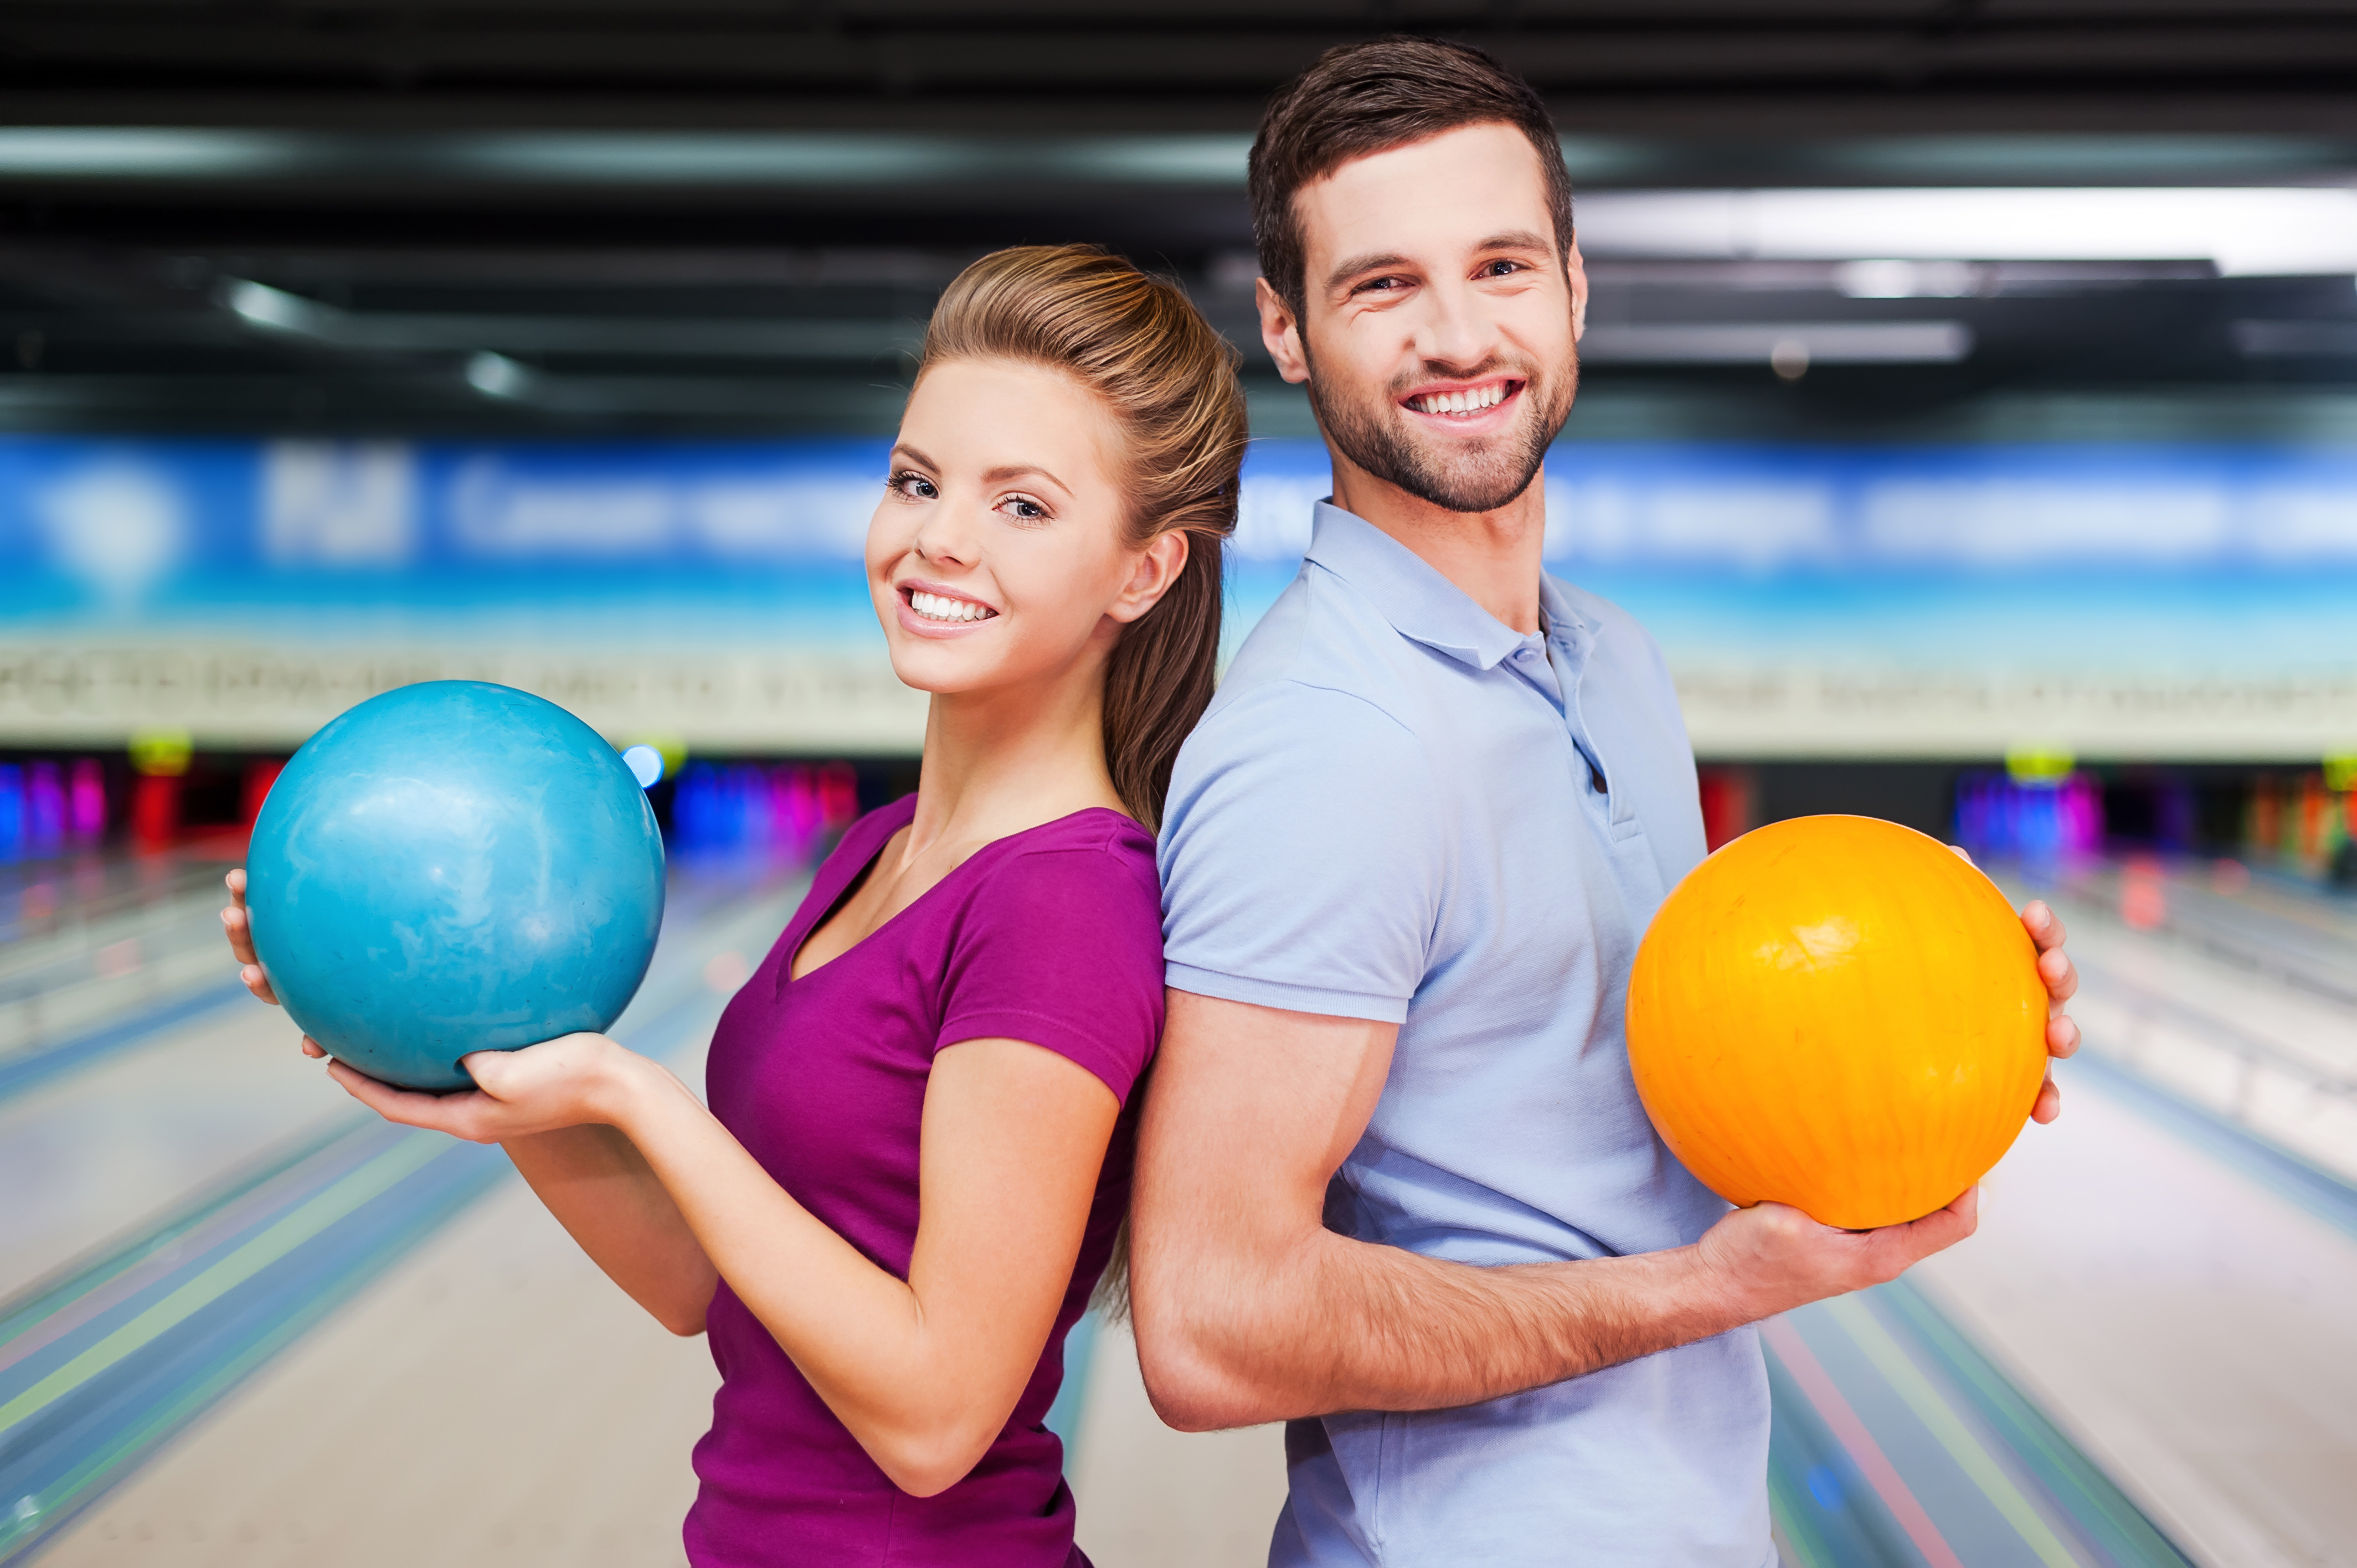 bowling couple | open bowling deals | bowling deals over the holidays | Sheboygan, WI | Odyssey Fun Center